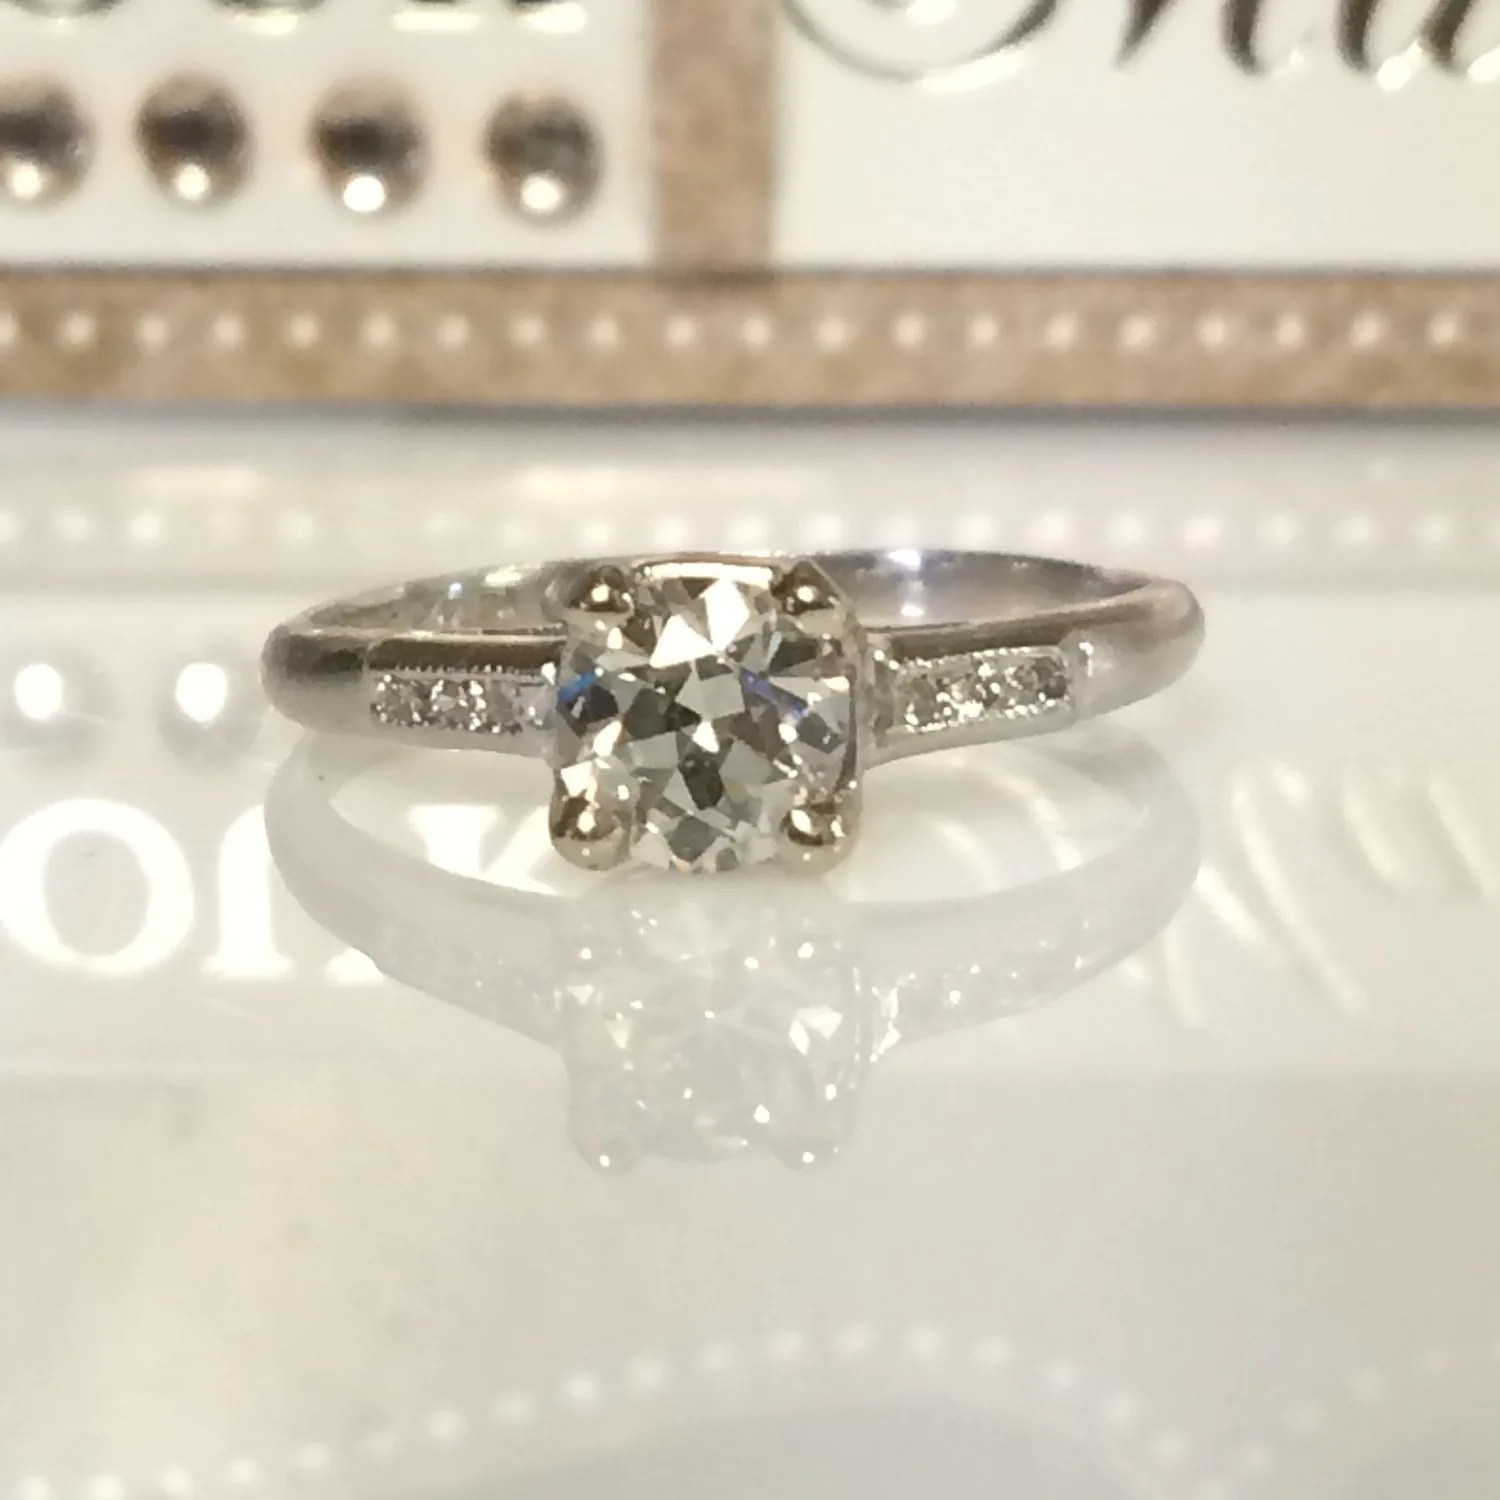 low profile ring low profile wedding ring Vintage Engagement Platinum Diamond Ring Low Profile Push Present Engagement Ring Trend Anniversary Gift Vow Renewal Romantic Jewelry Gift